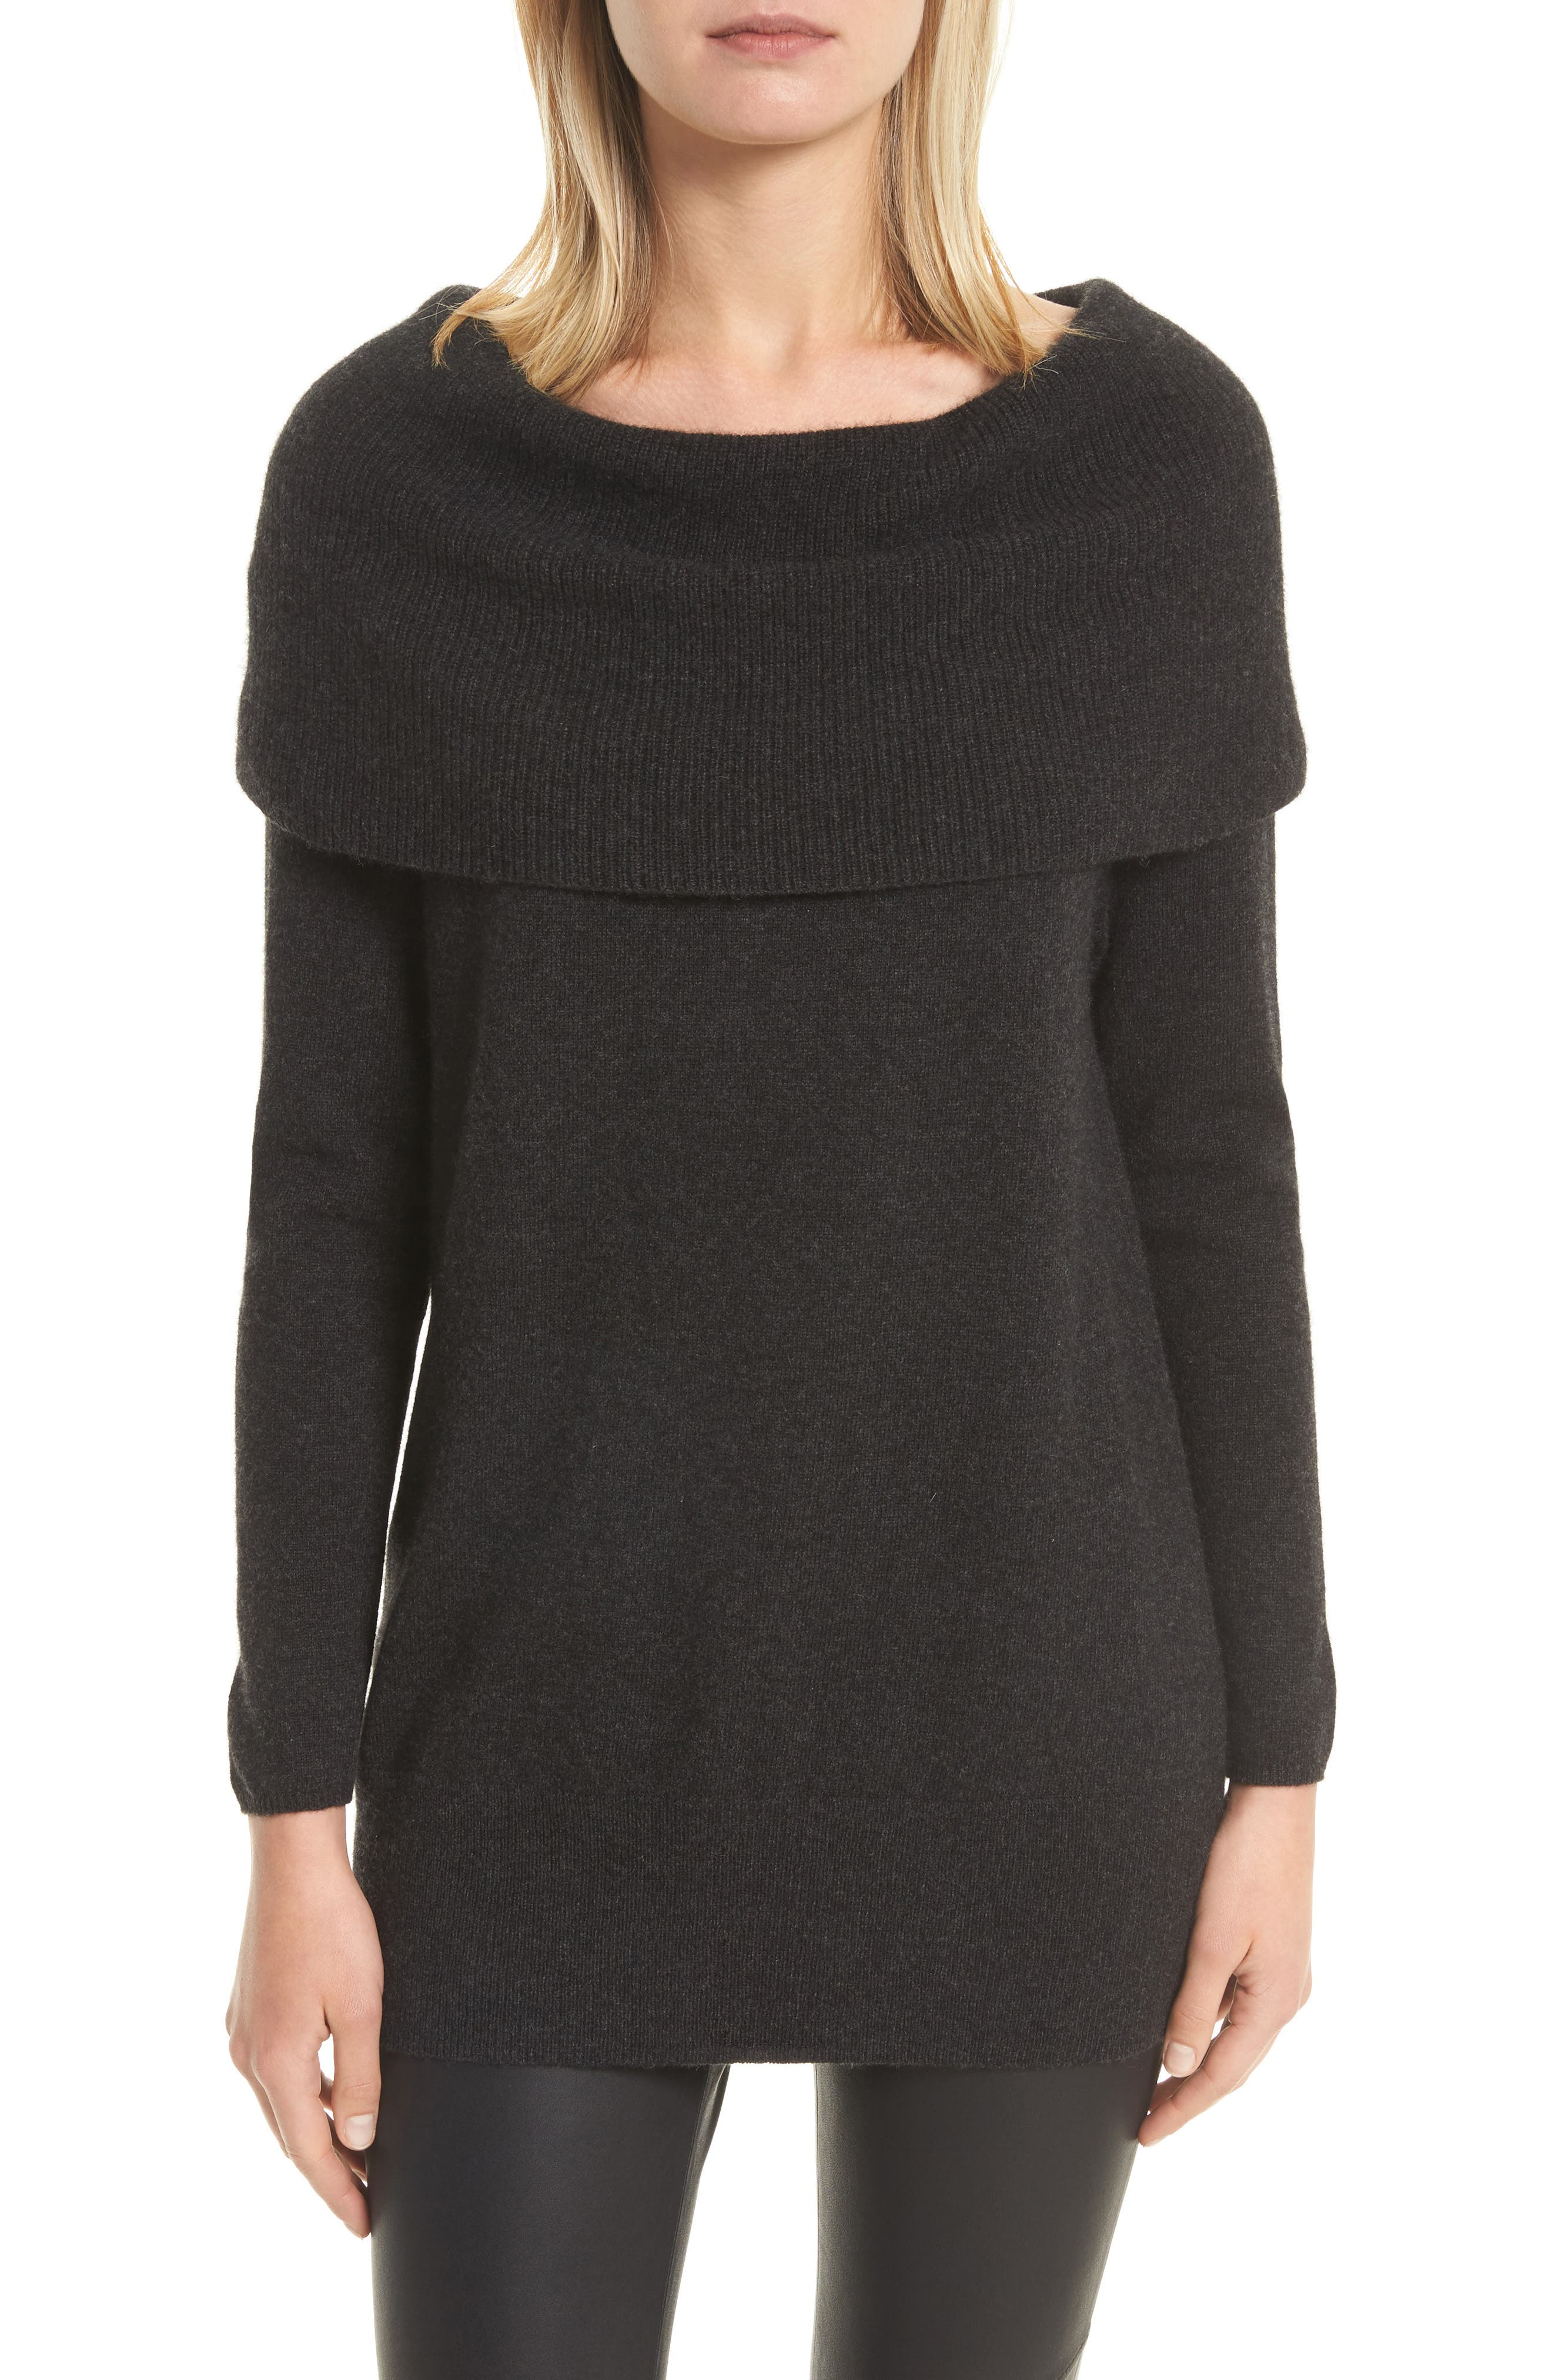 Joie Sibel Wool & Cashmere Sweater